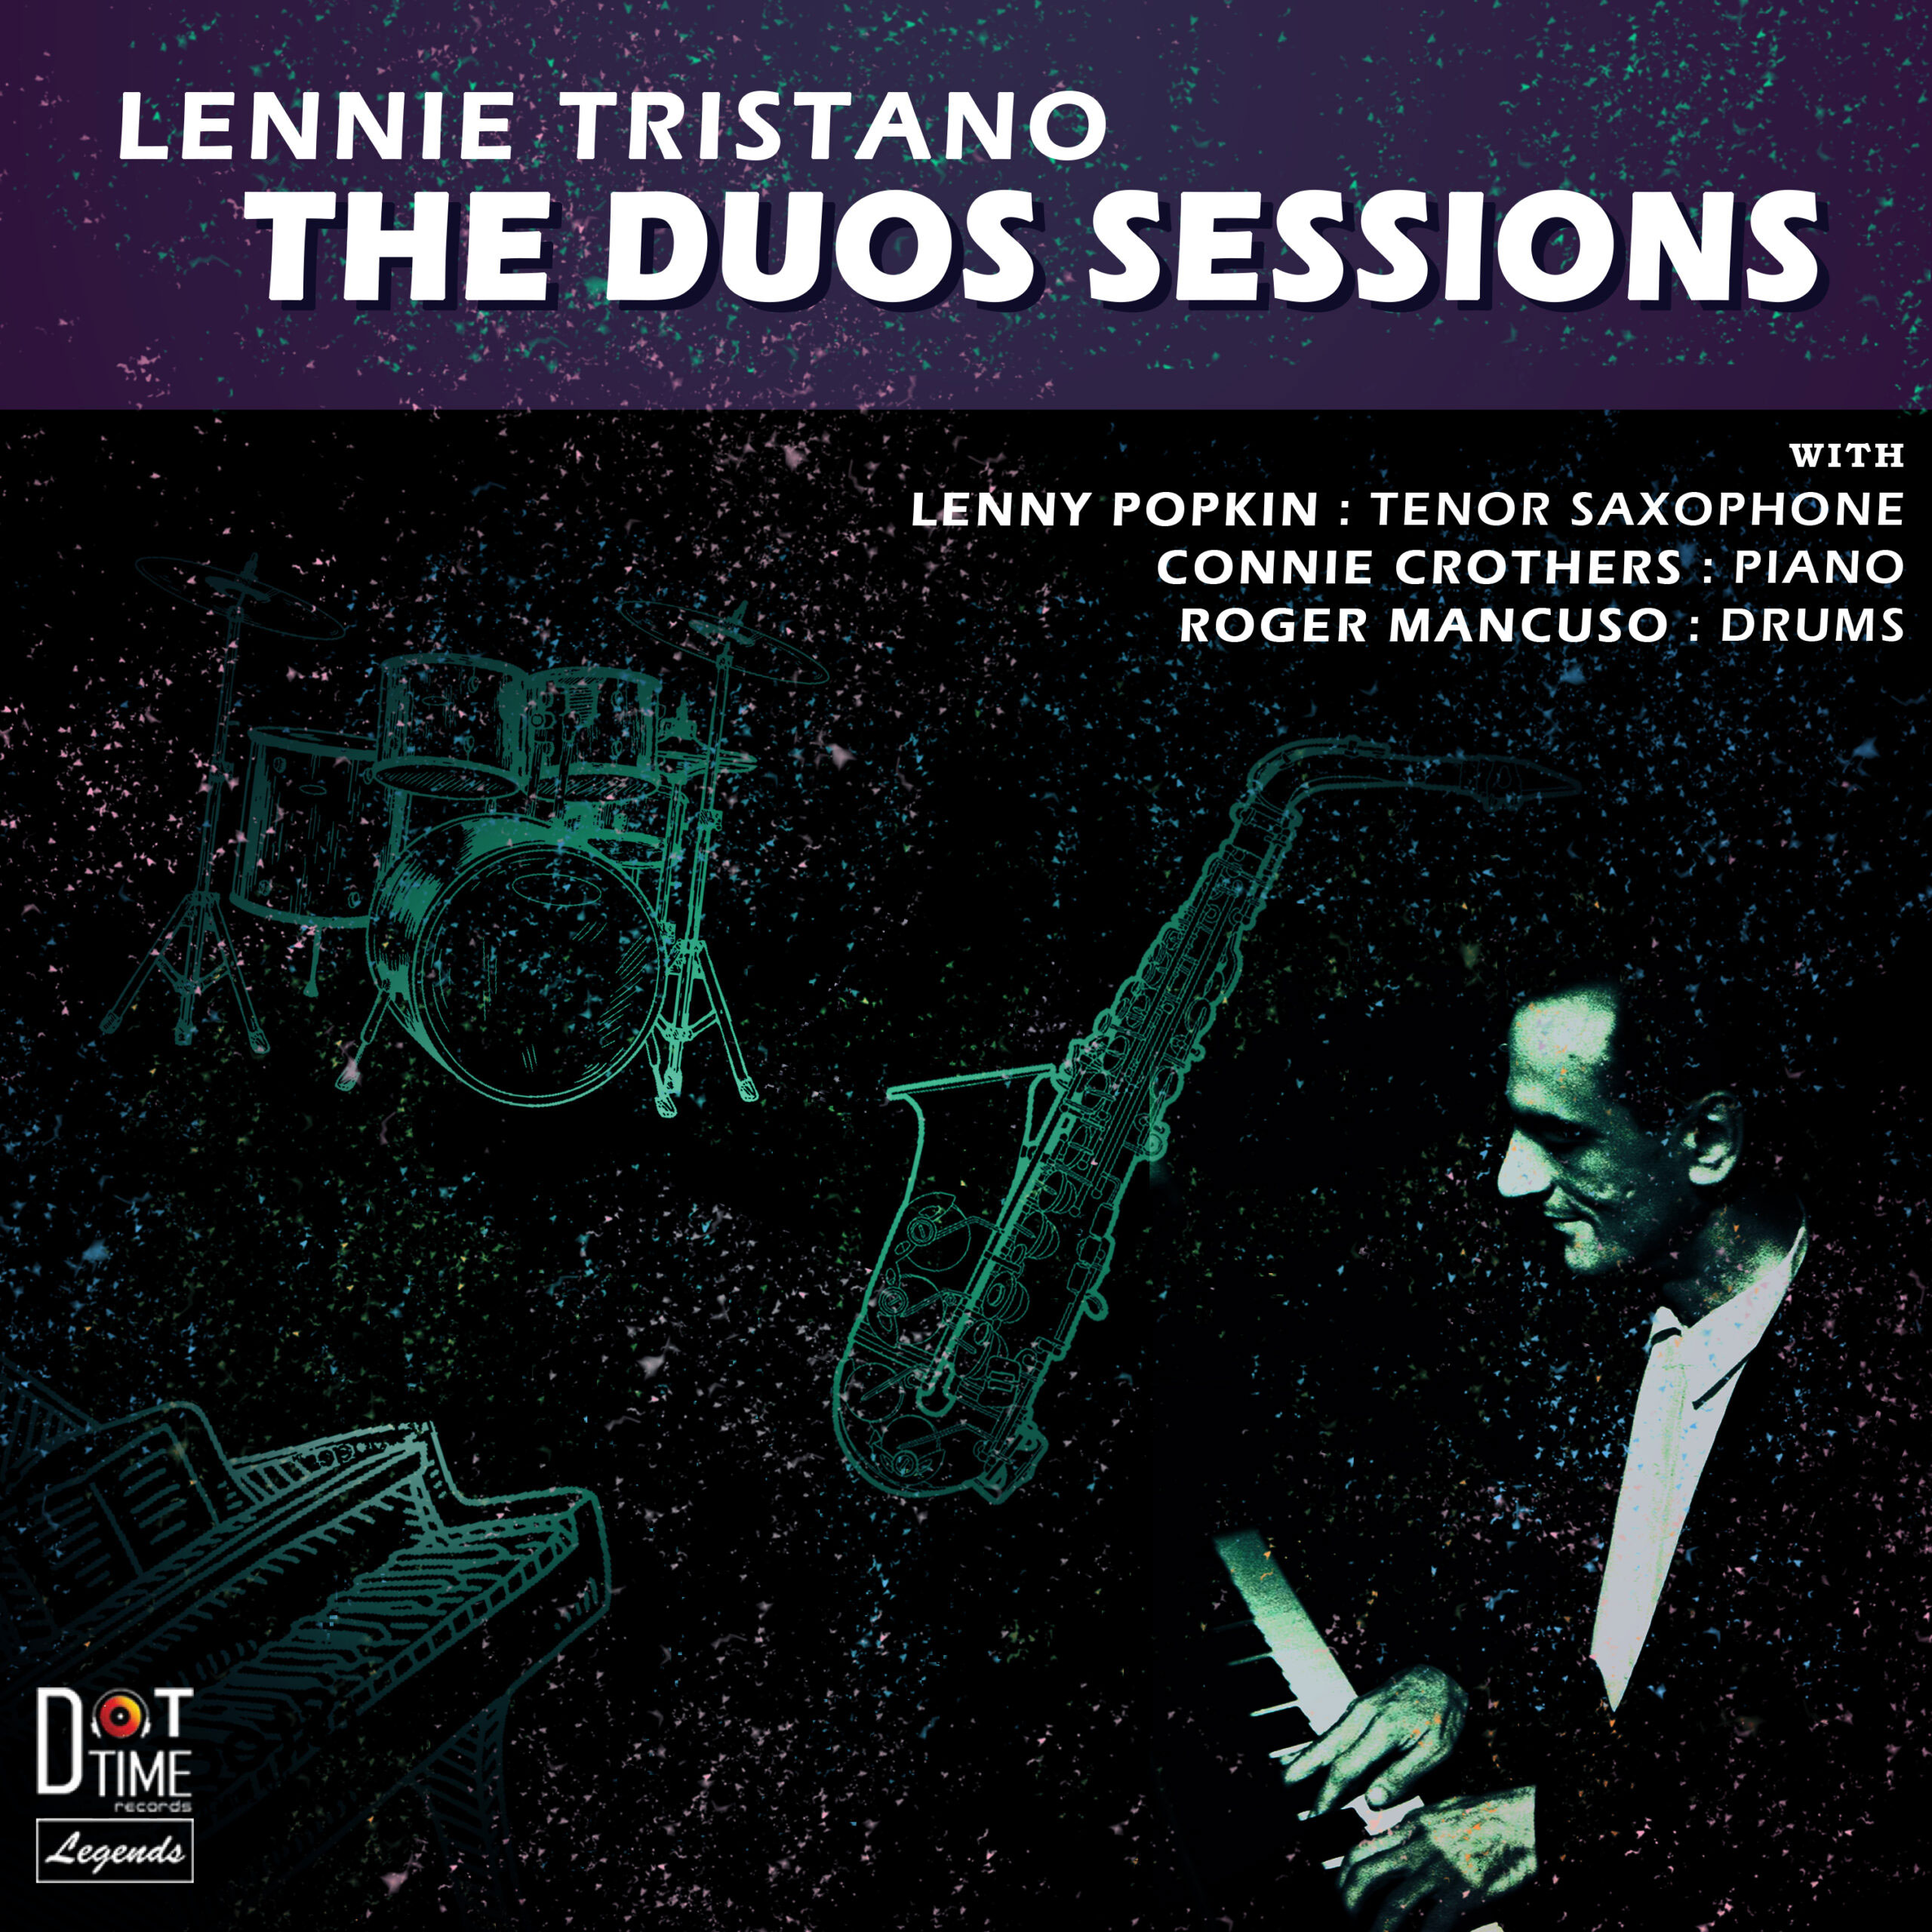 Lennie Tristano The Duos Sessions Hand-Numbered Limited Edition LP